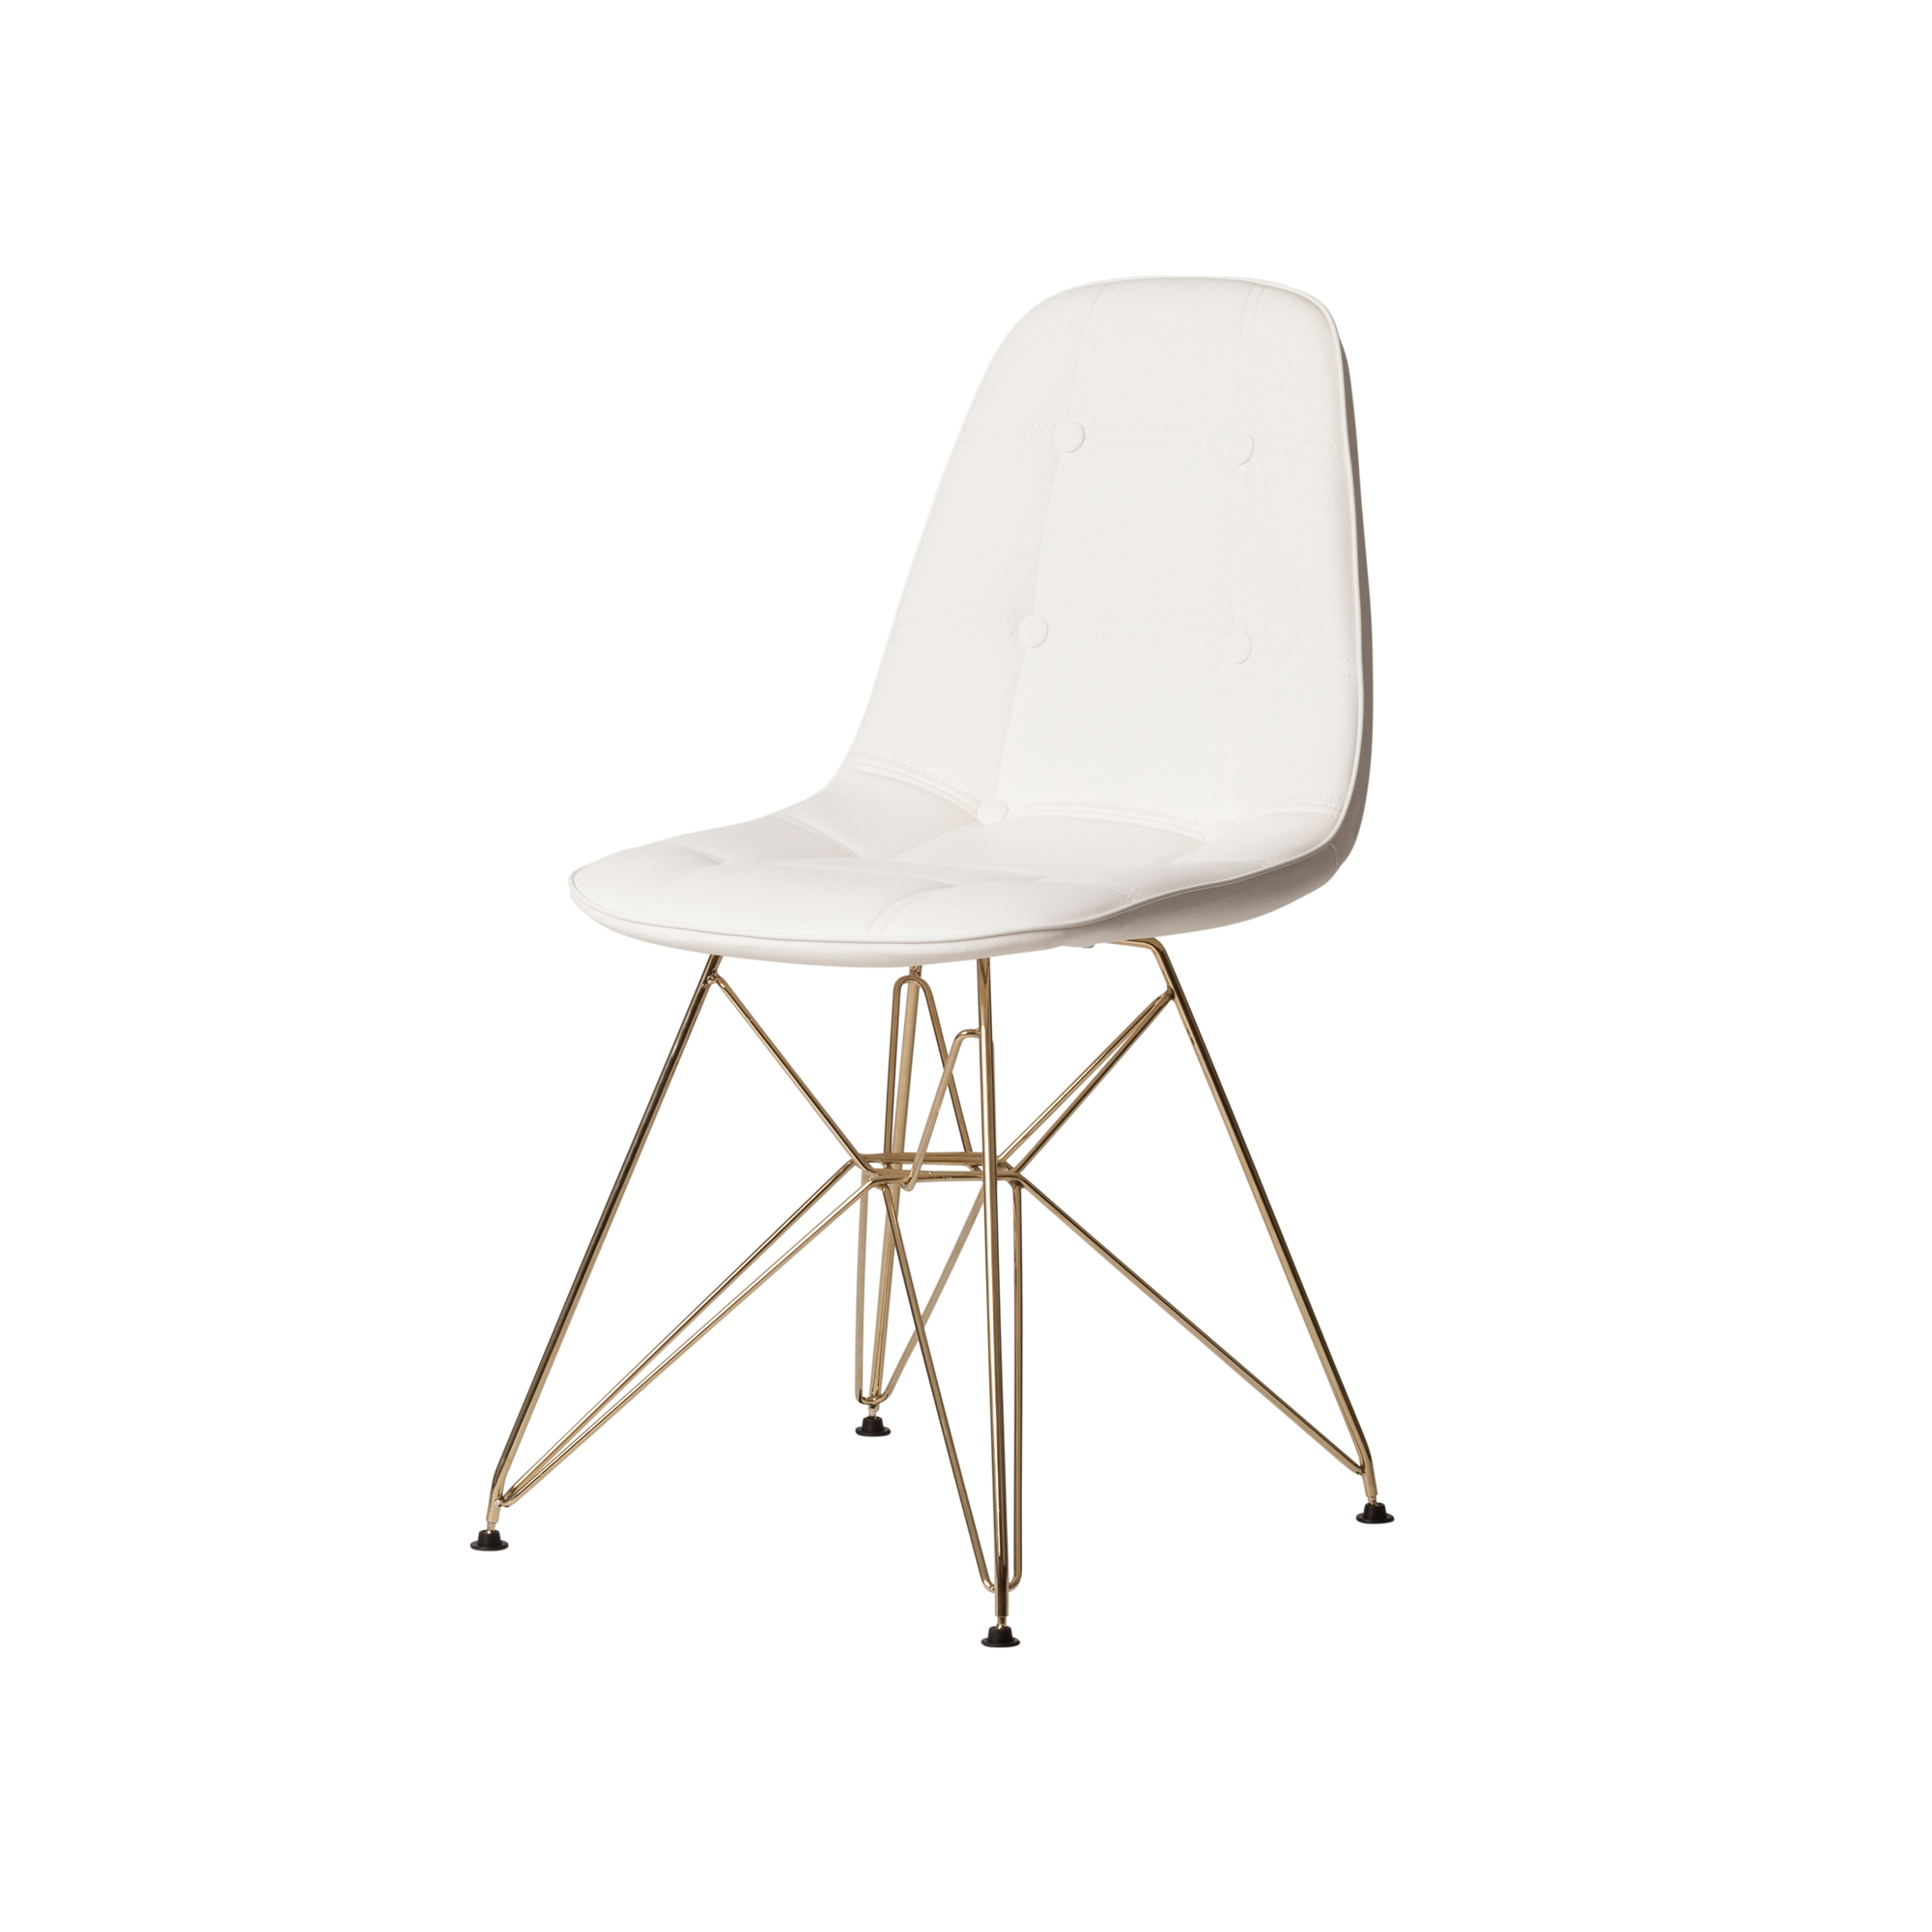 Strange Dsr Style White Leather Side Chair With Gold Legs Uwap Interior Chair Design Uwaporg